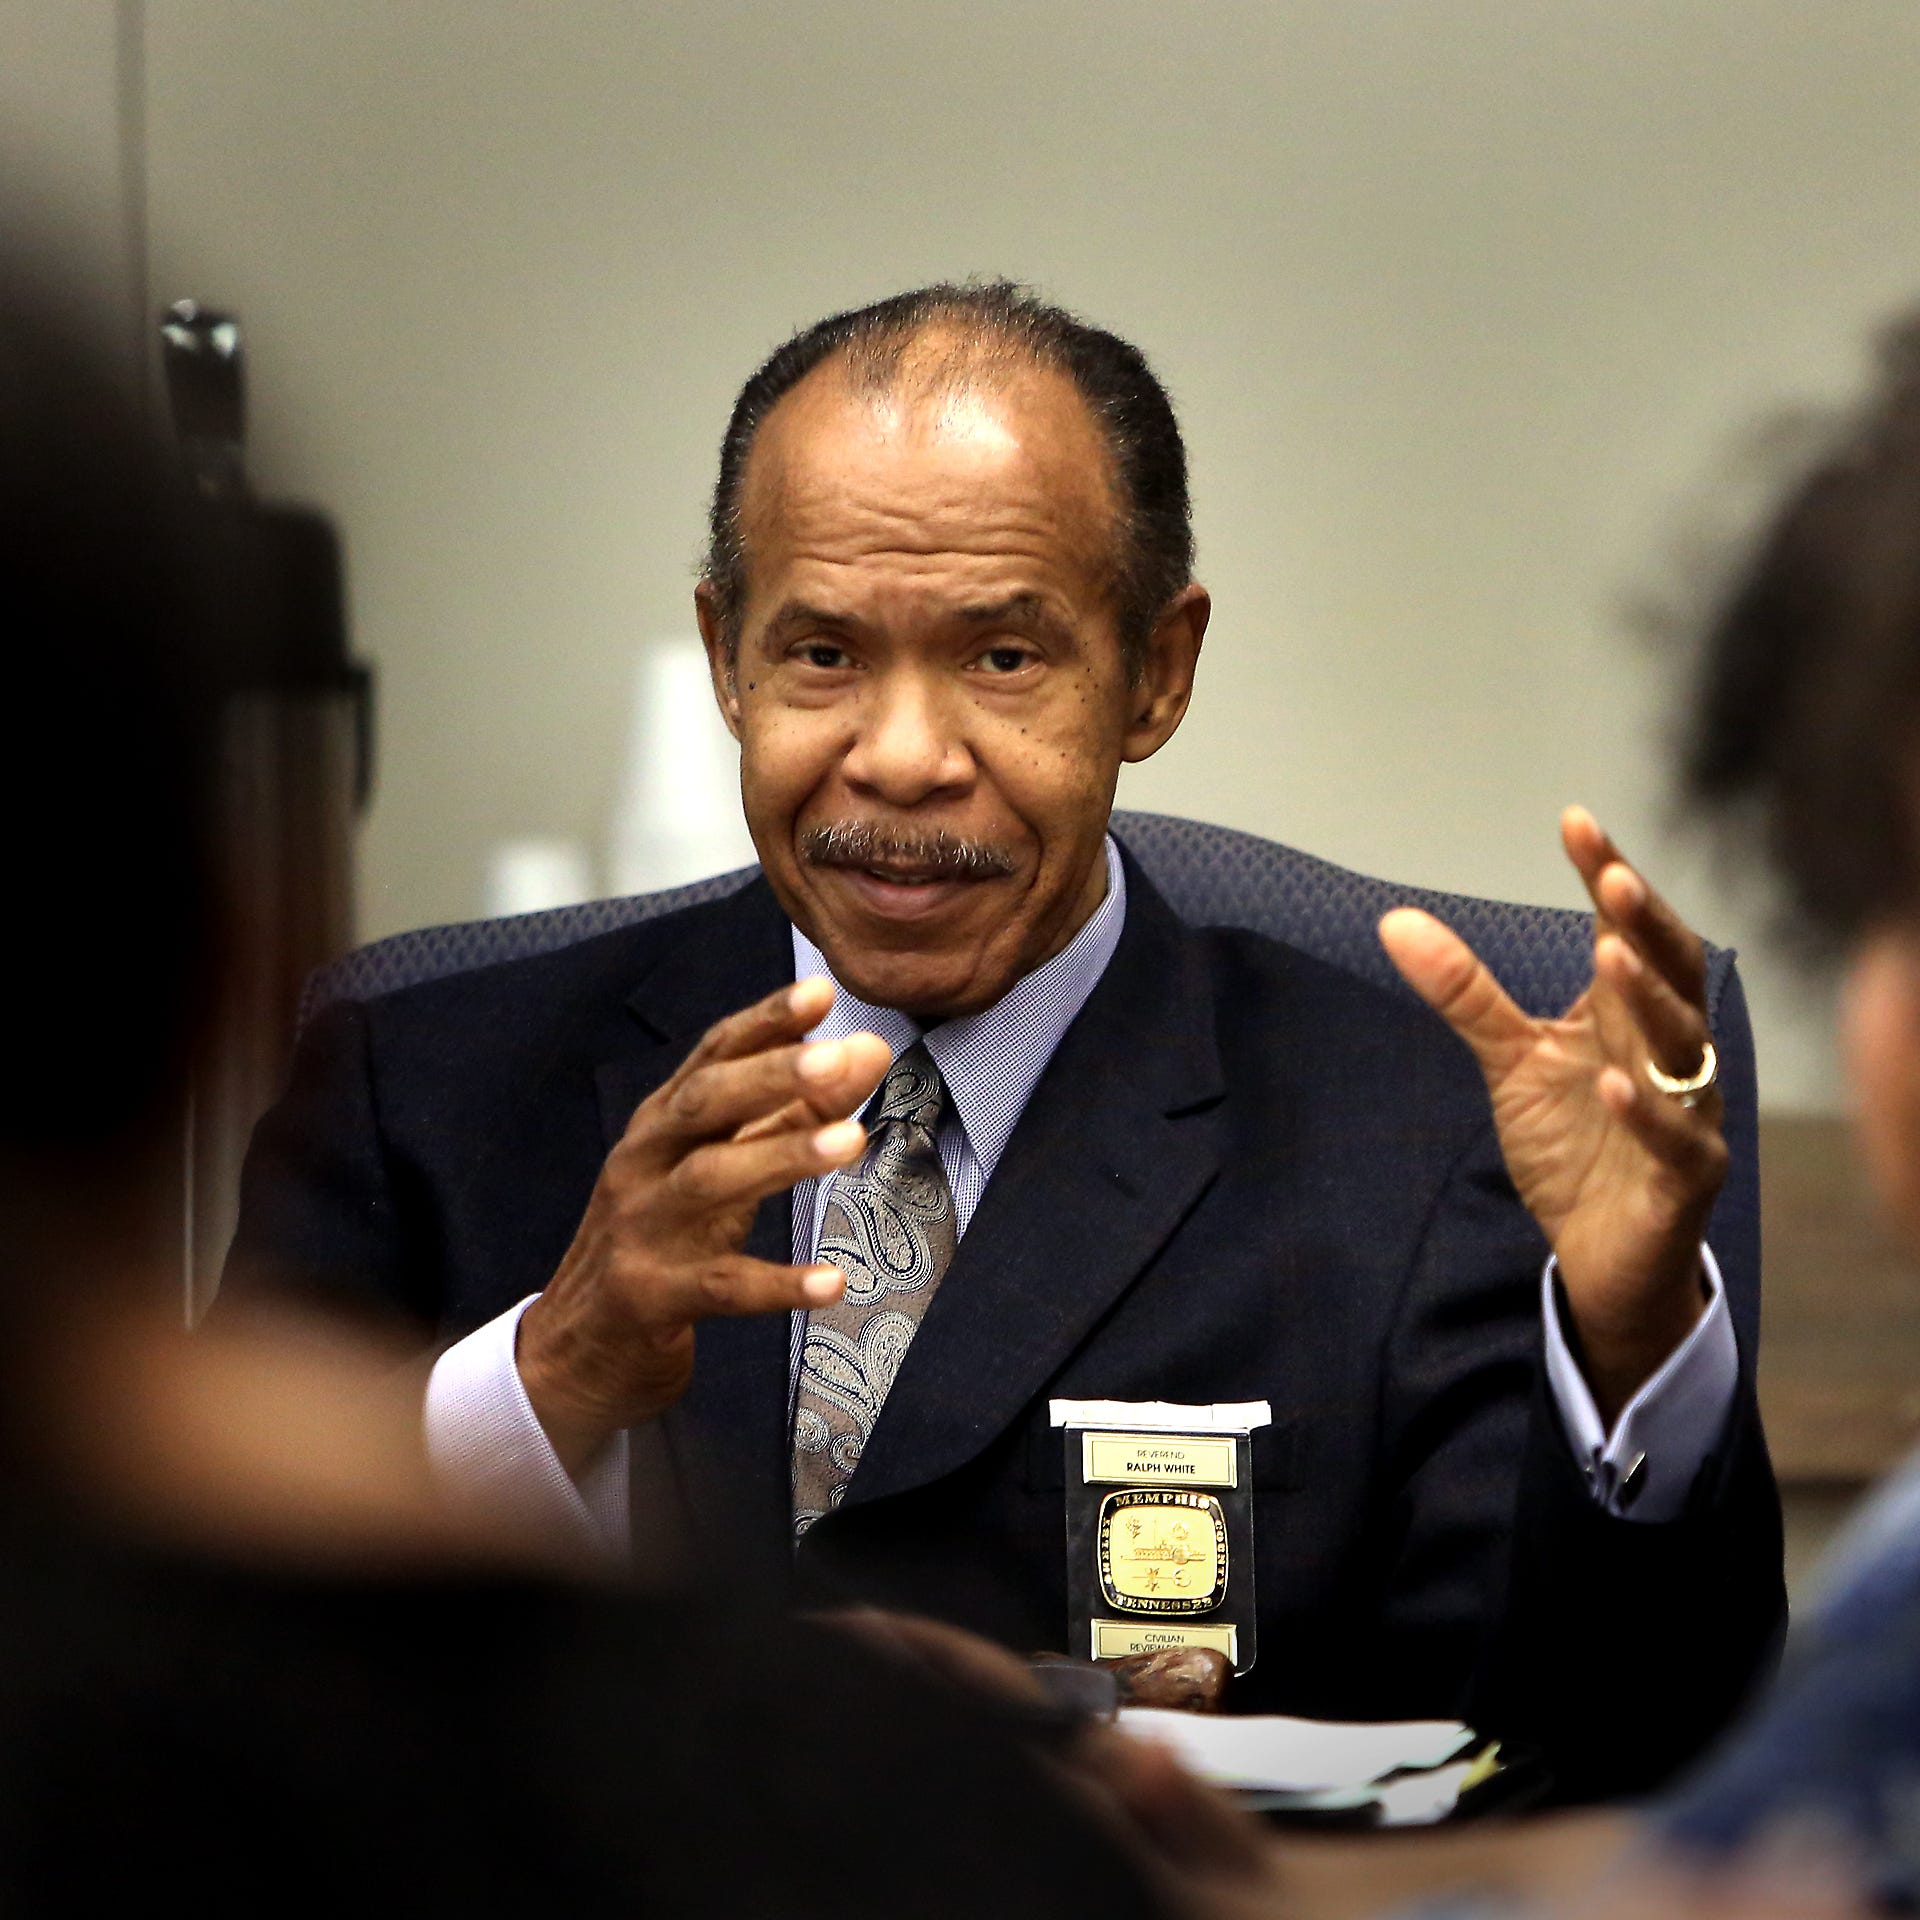 Memphis preacher the Rev. Ralph White has died, according to Mayor Strickland